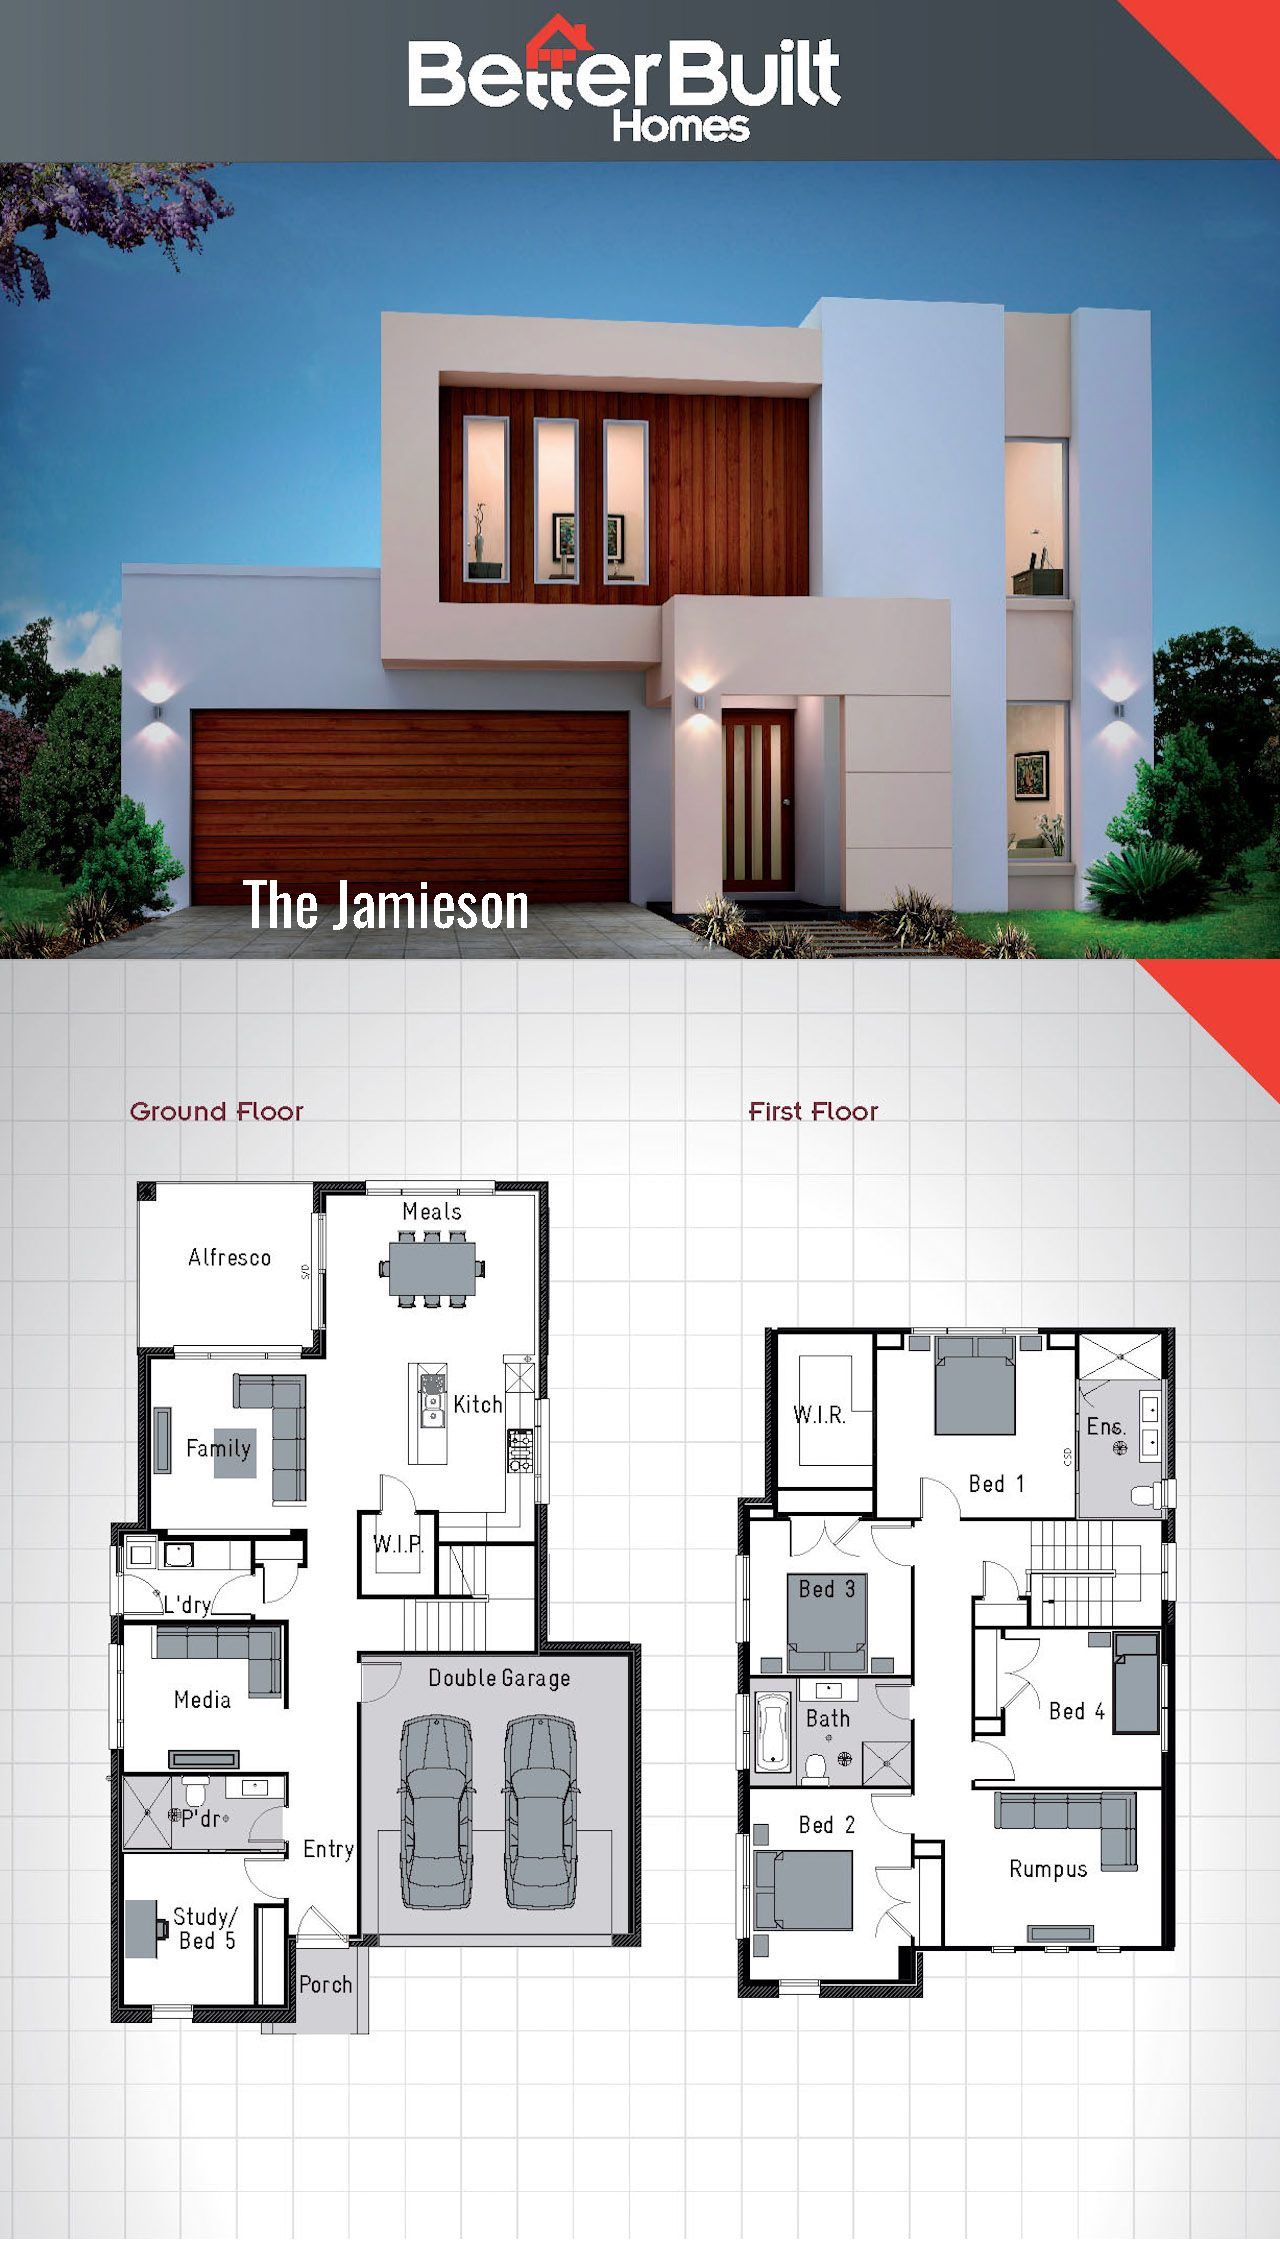 The jamieson double storey house design 250 sq m 10 9m x 16 6m escape the everyday with the jamiesons unique facade yet practical floor plan